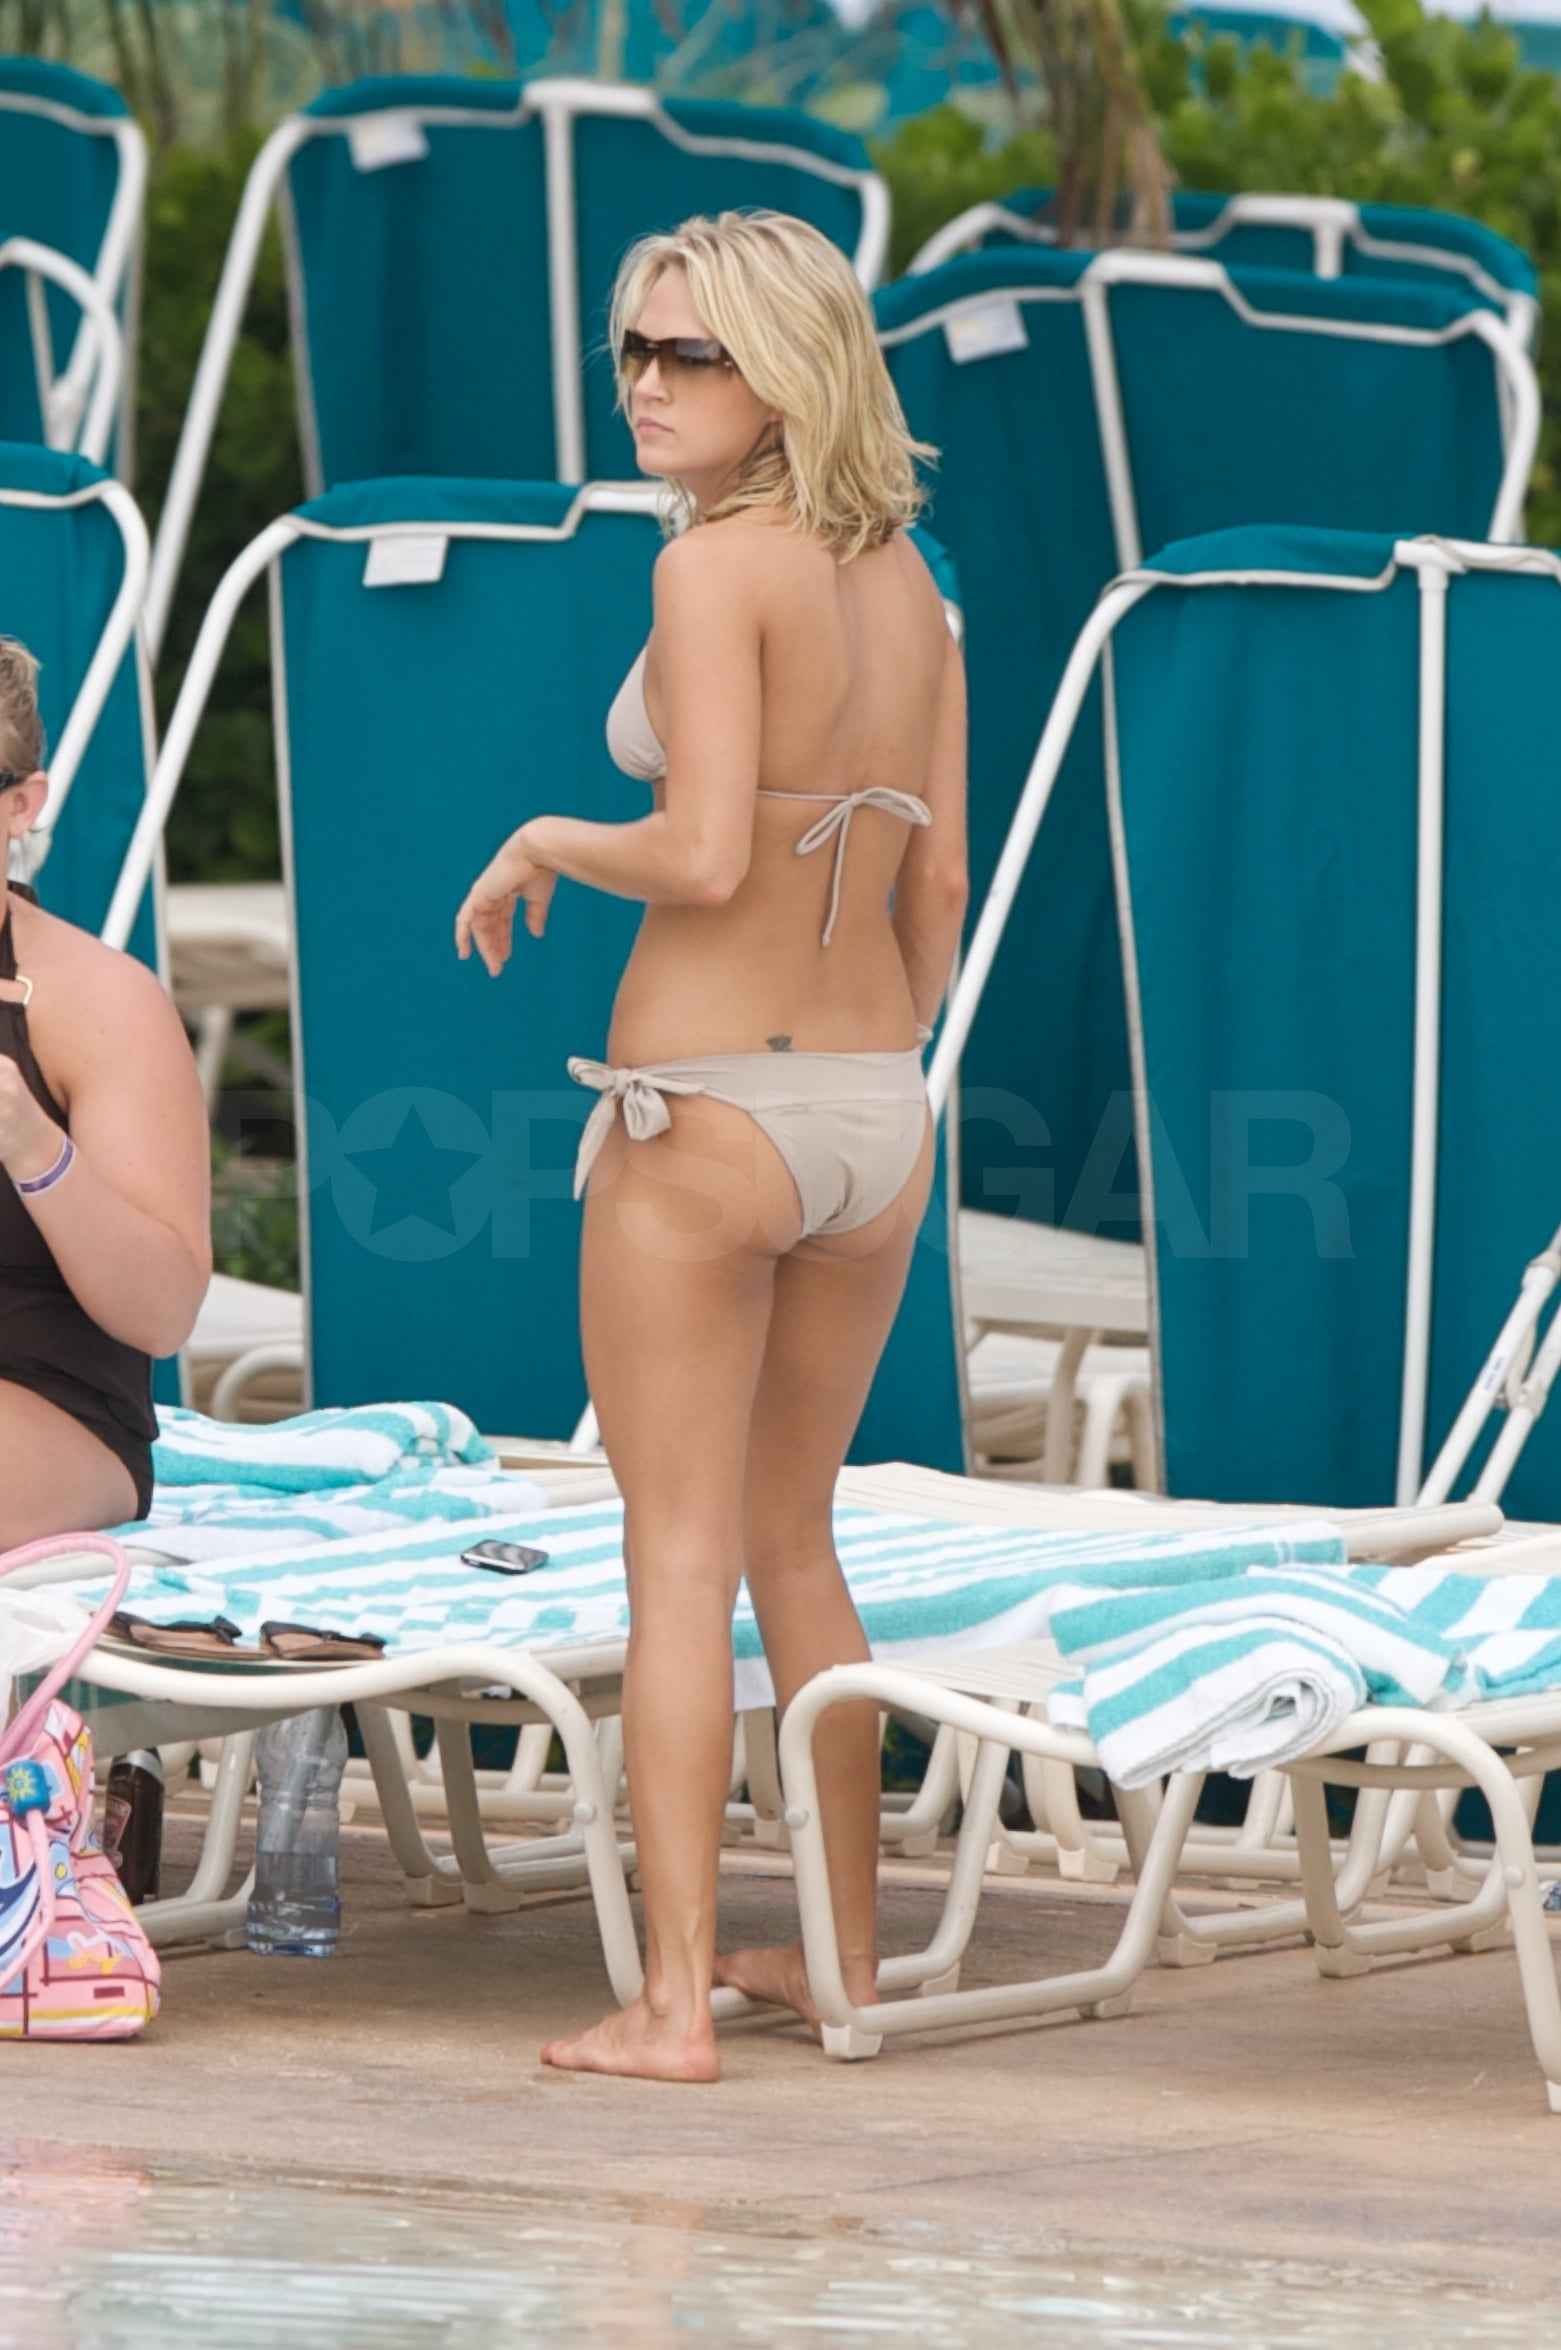 Carrie Underwood Picture Gallery 3 - Hot Carrie Underwood